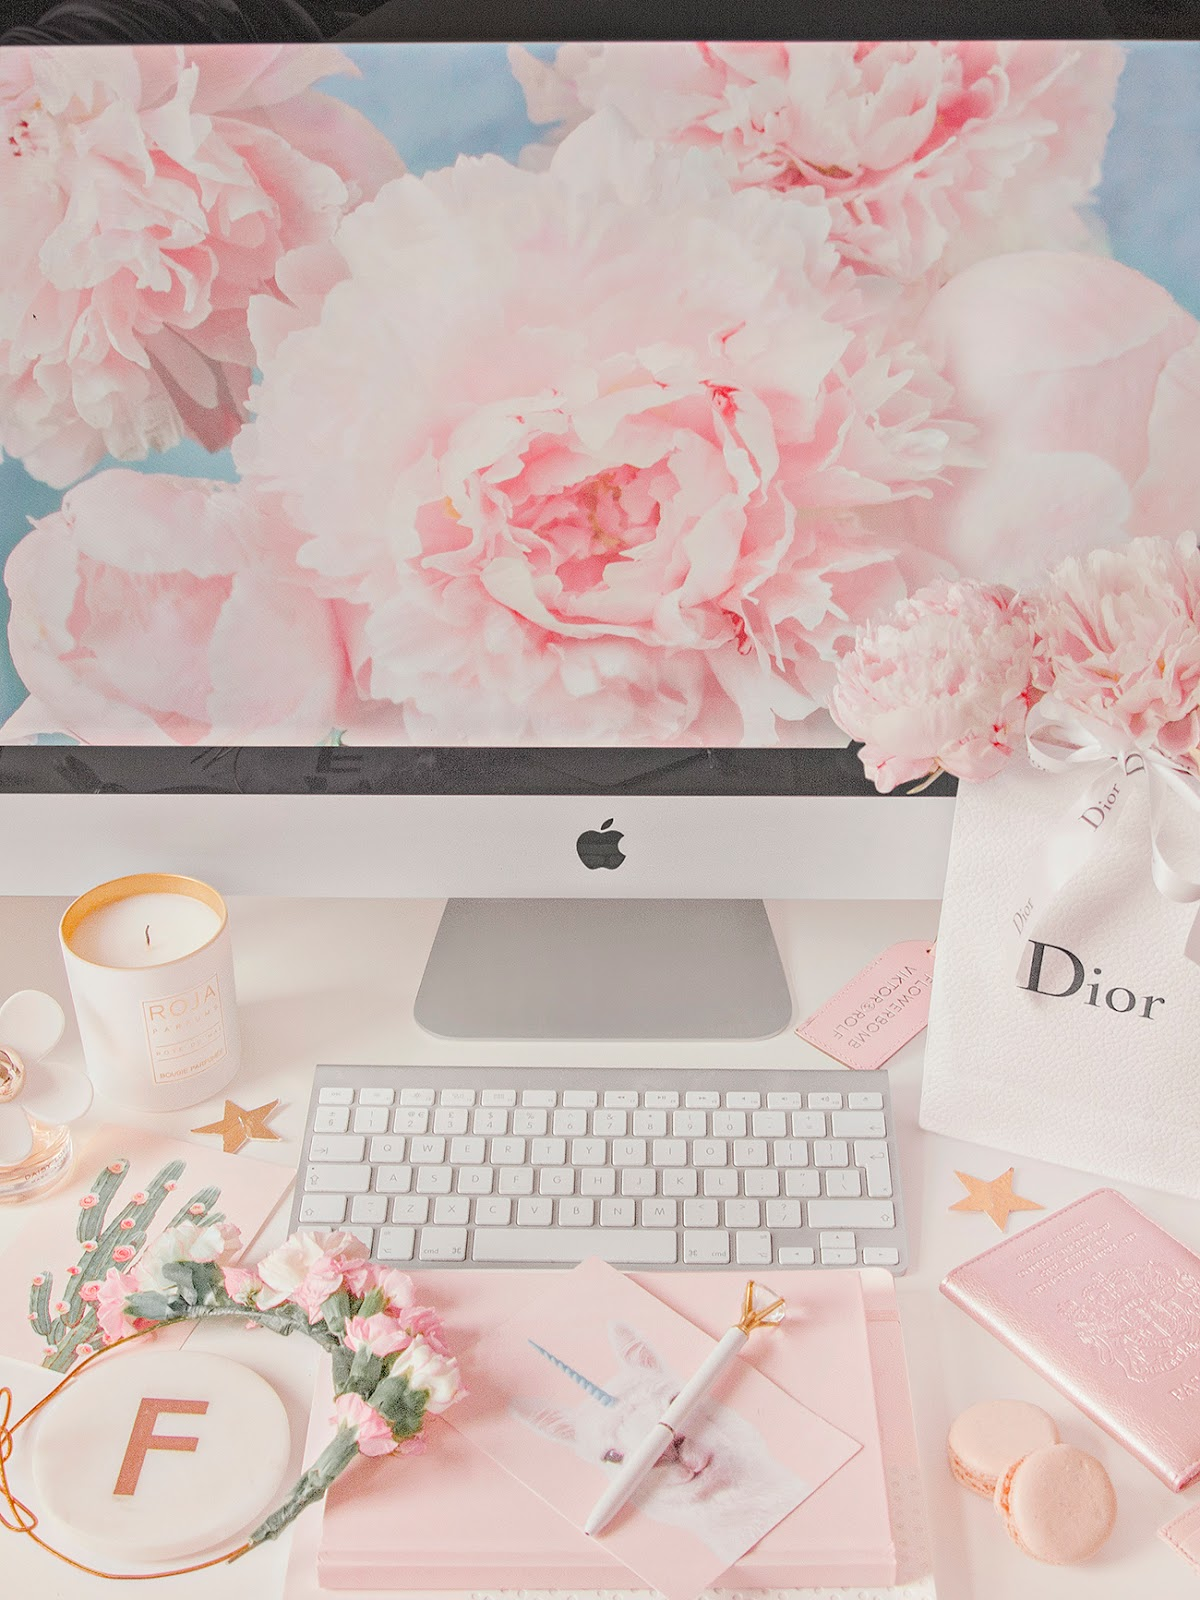 Photo of a desk with an iMac showing a wallpaper of peonies